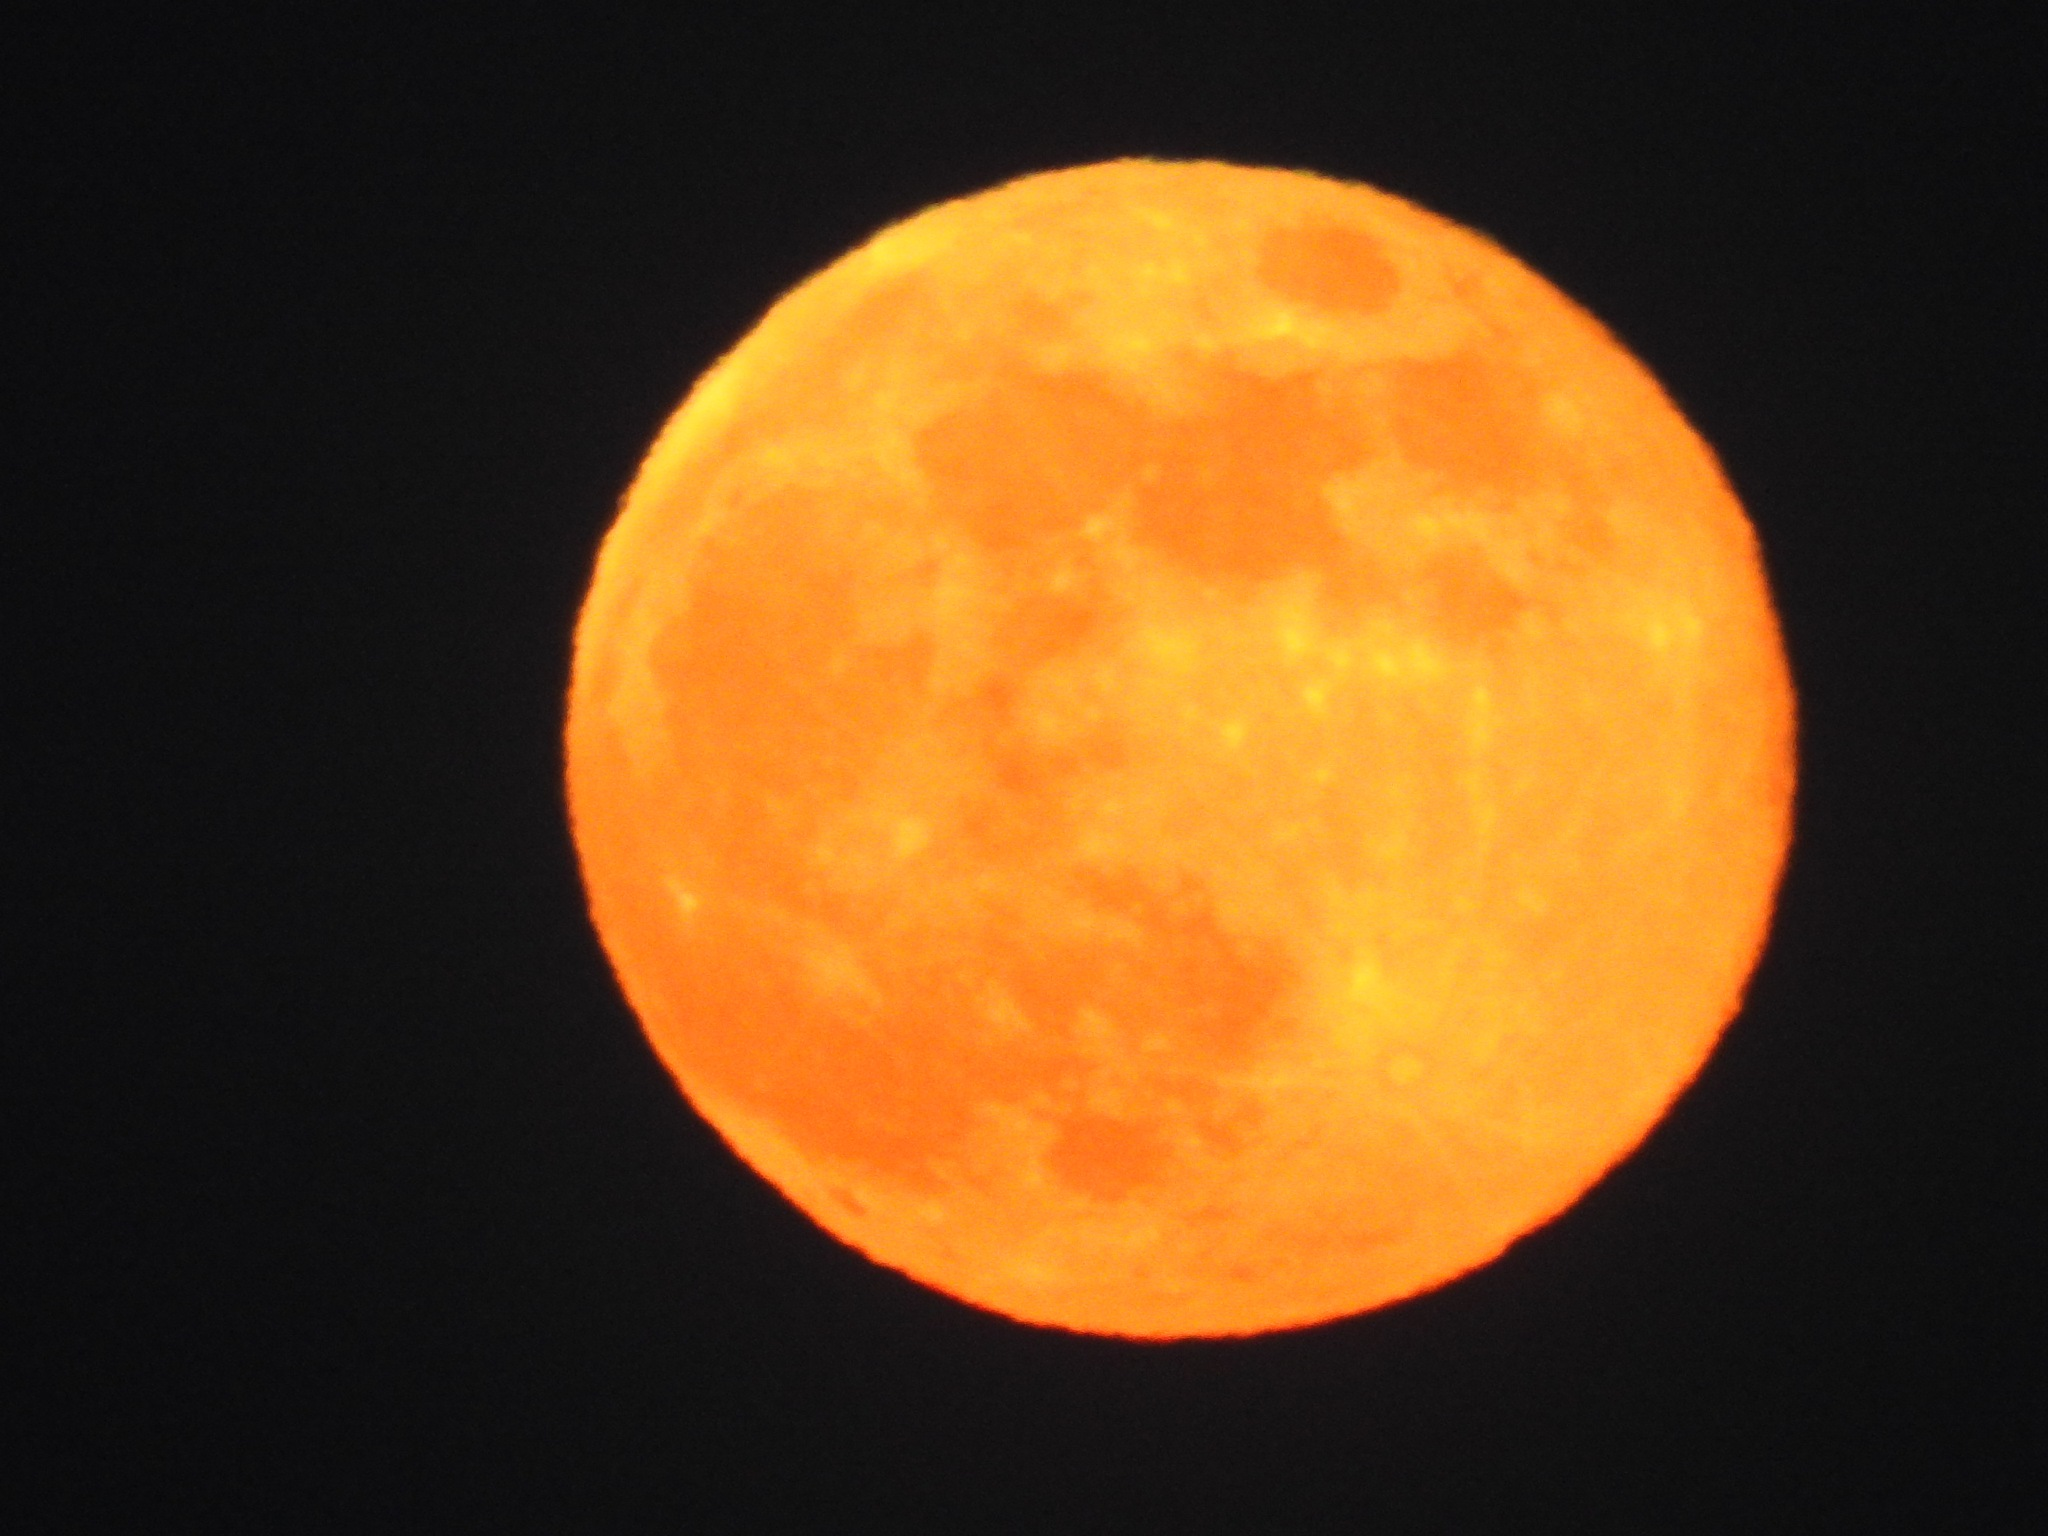 Dinner time moon #2 CT by G. A. McComas